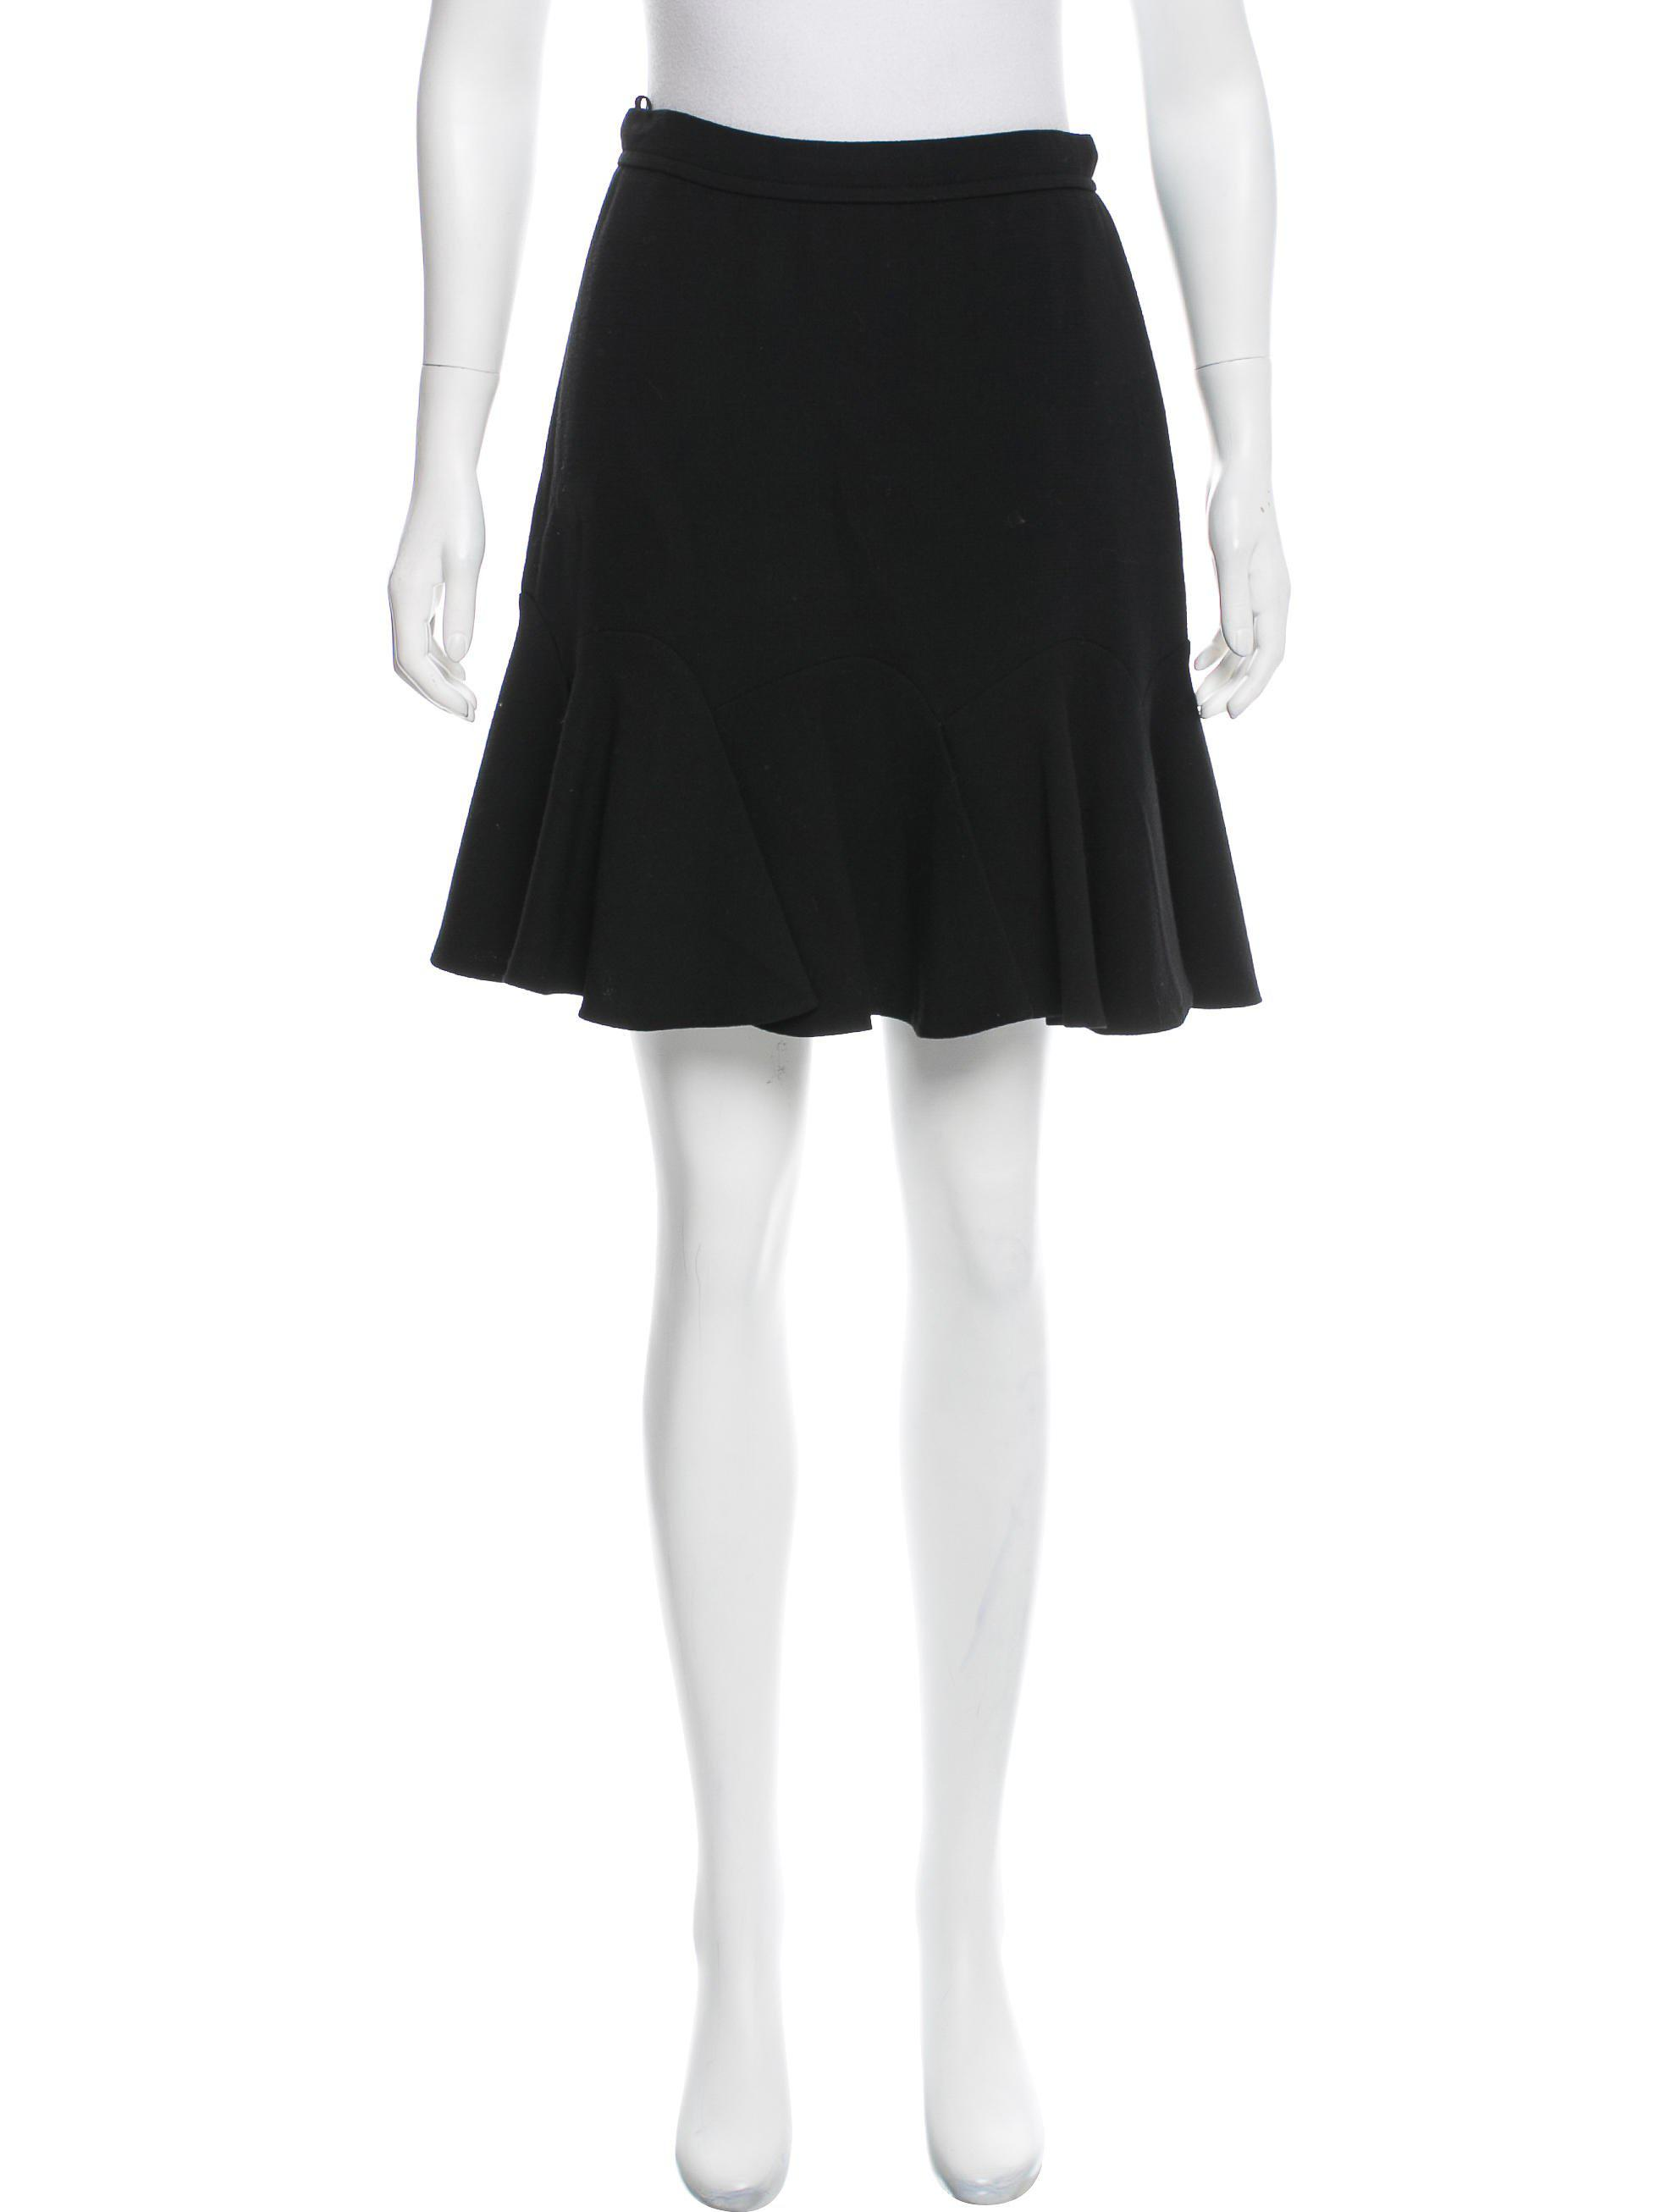 Jason Wu Virgin Wool Knee-Length Skirt w/ Tags Clearance Choice With Credit Card For Sale Clearance Fast Delivery Collections For Sale Cheap Explore Yk5RUuFgX